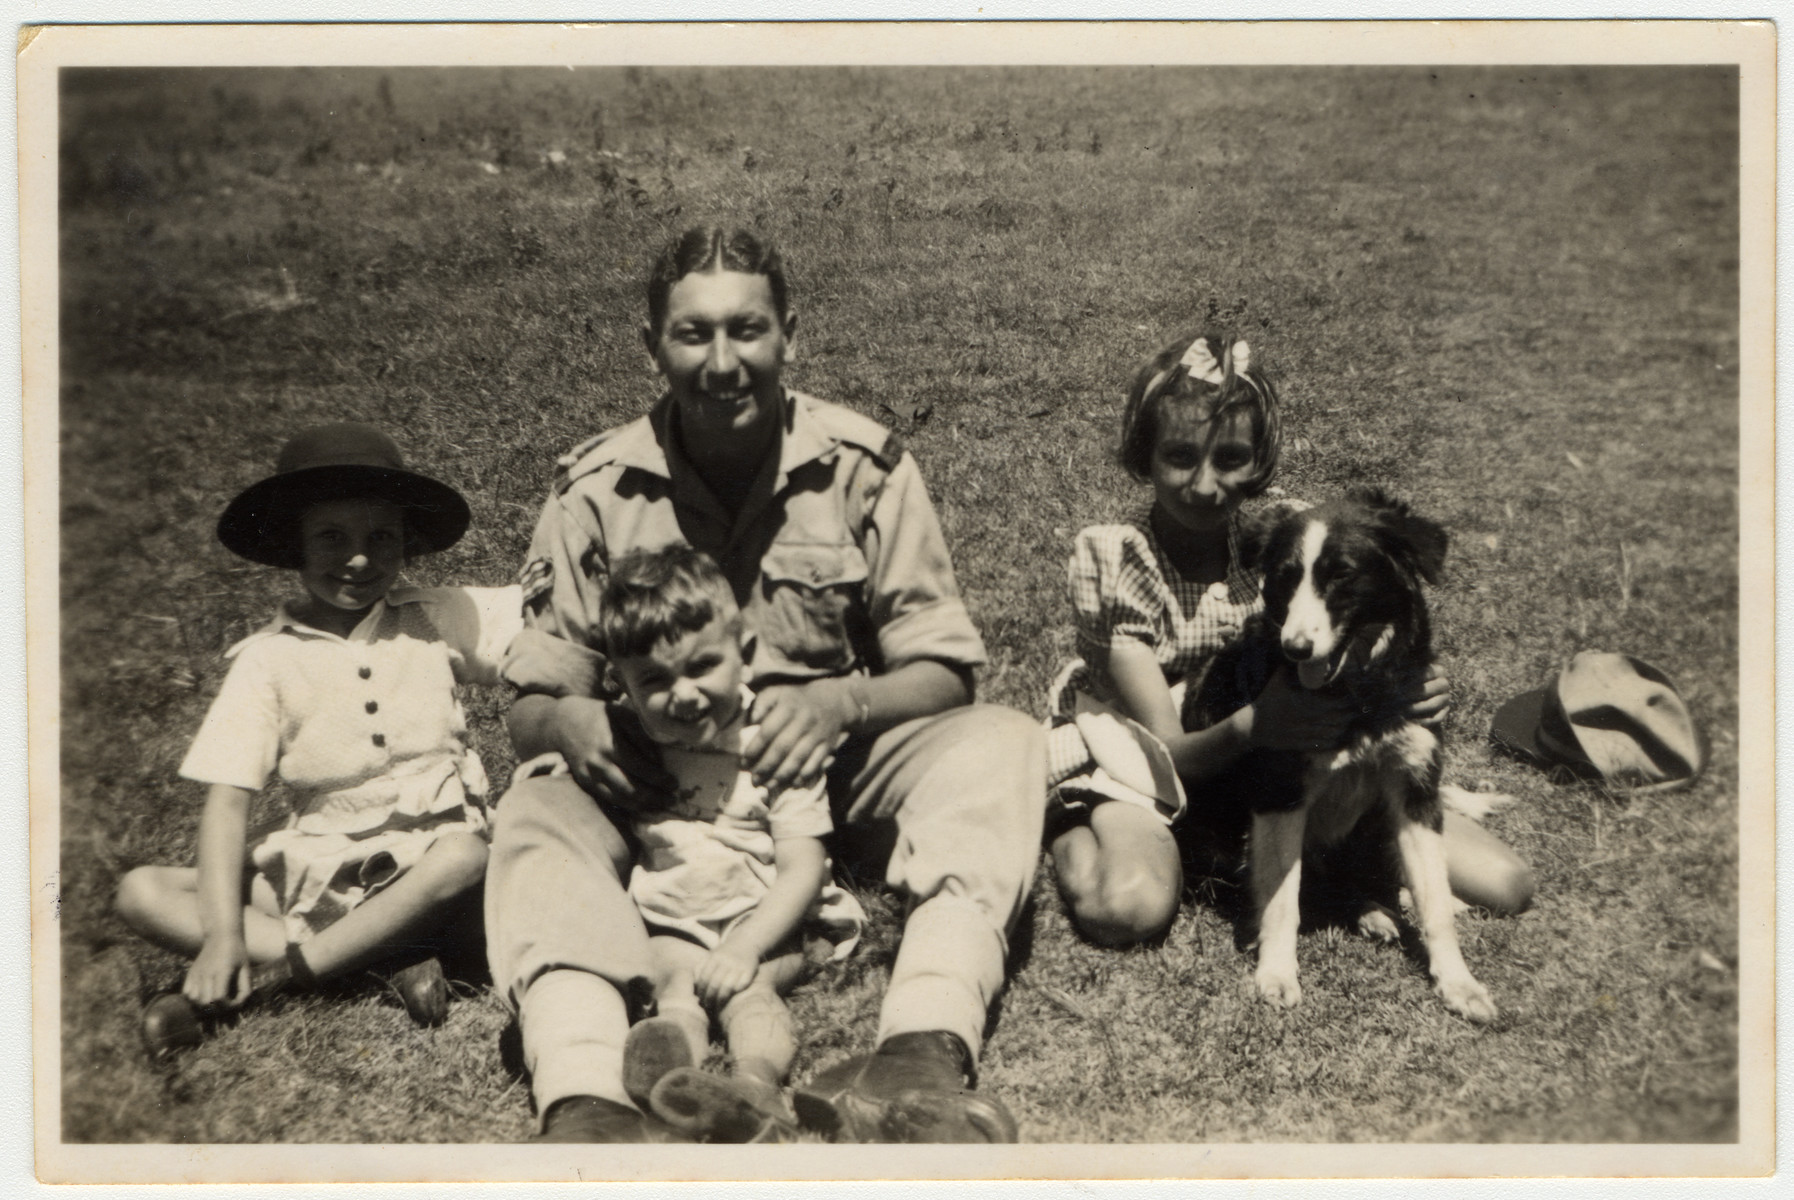 A Jewish soldier in the British army poses with refugee children from Germany on their farm in Kenya where he had come to celebrate Jewish holidays.  Gisela Berg is on the far left and her sister Inge is on the right.  In the center is a Jewish British soldier and Egon Berg.